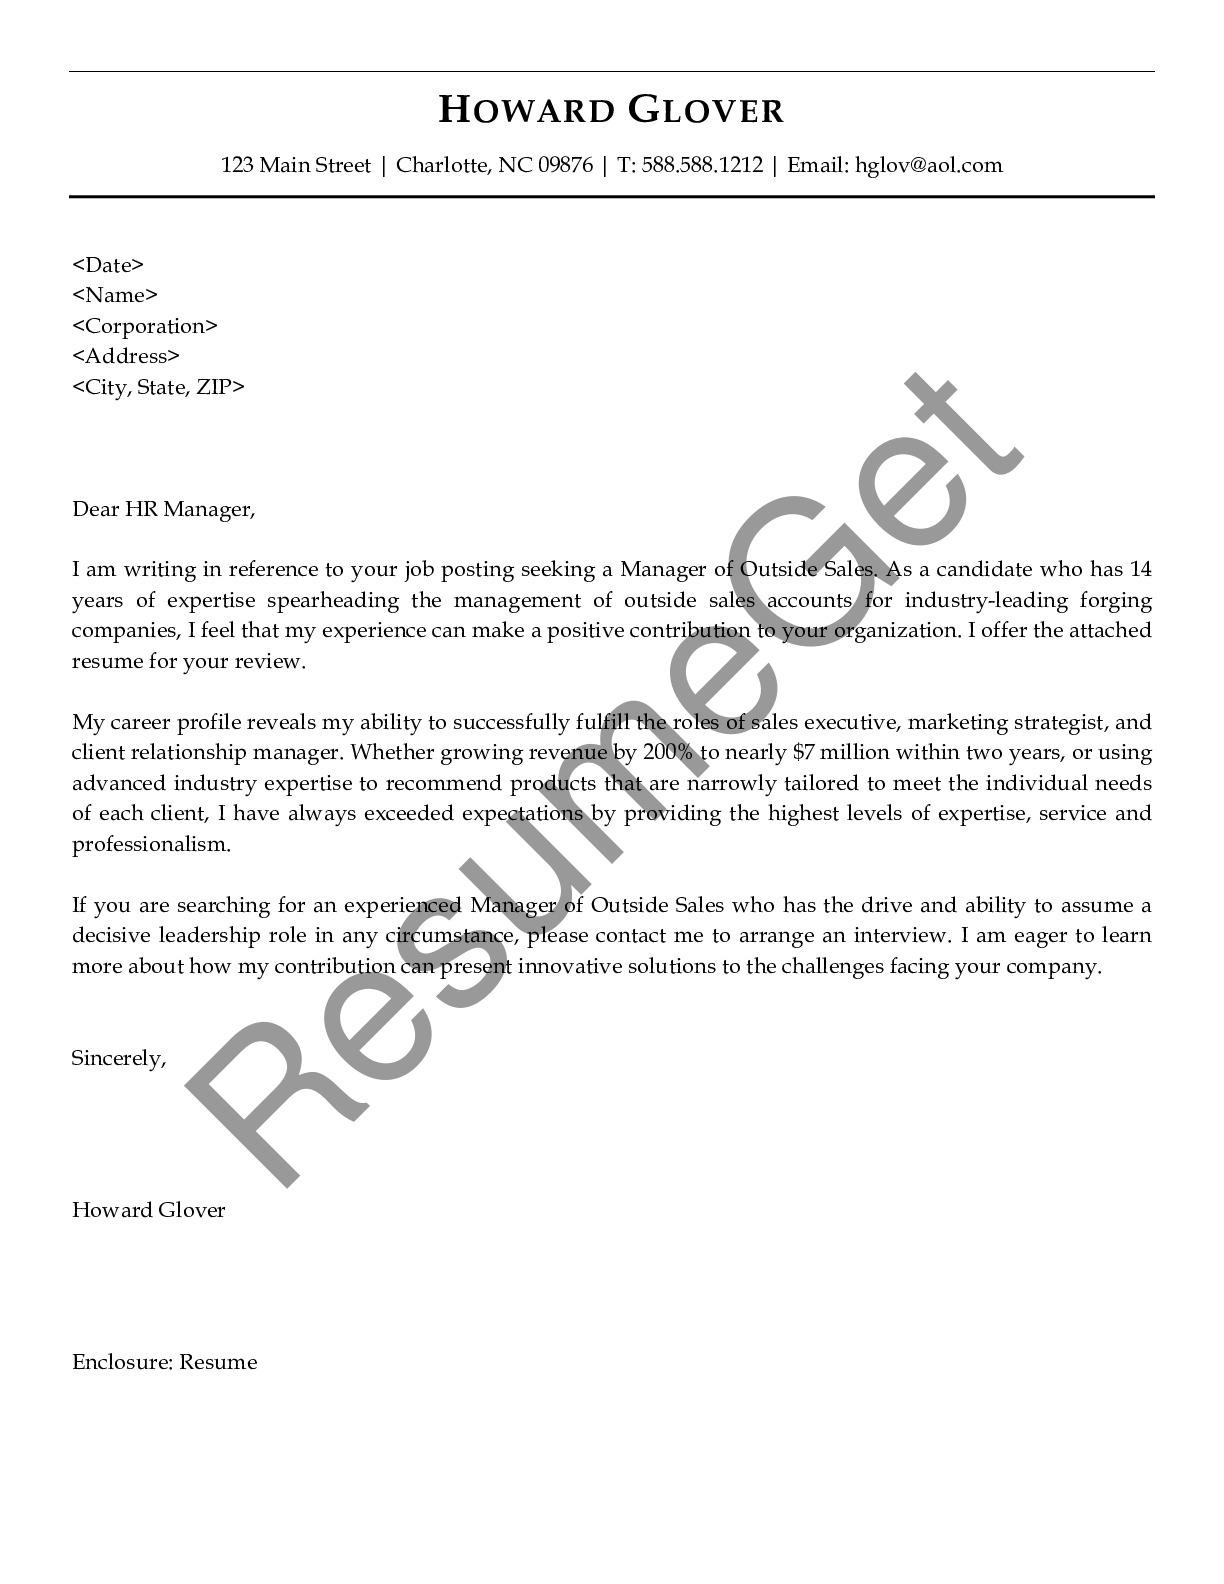 Cover Letter for Manager of Outside Sales